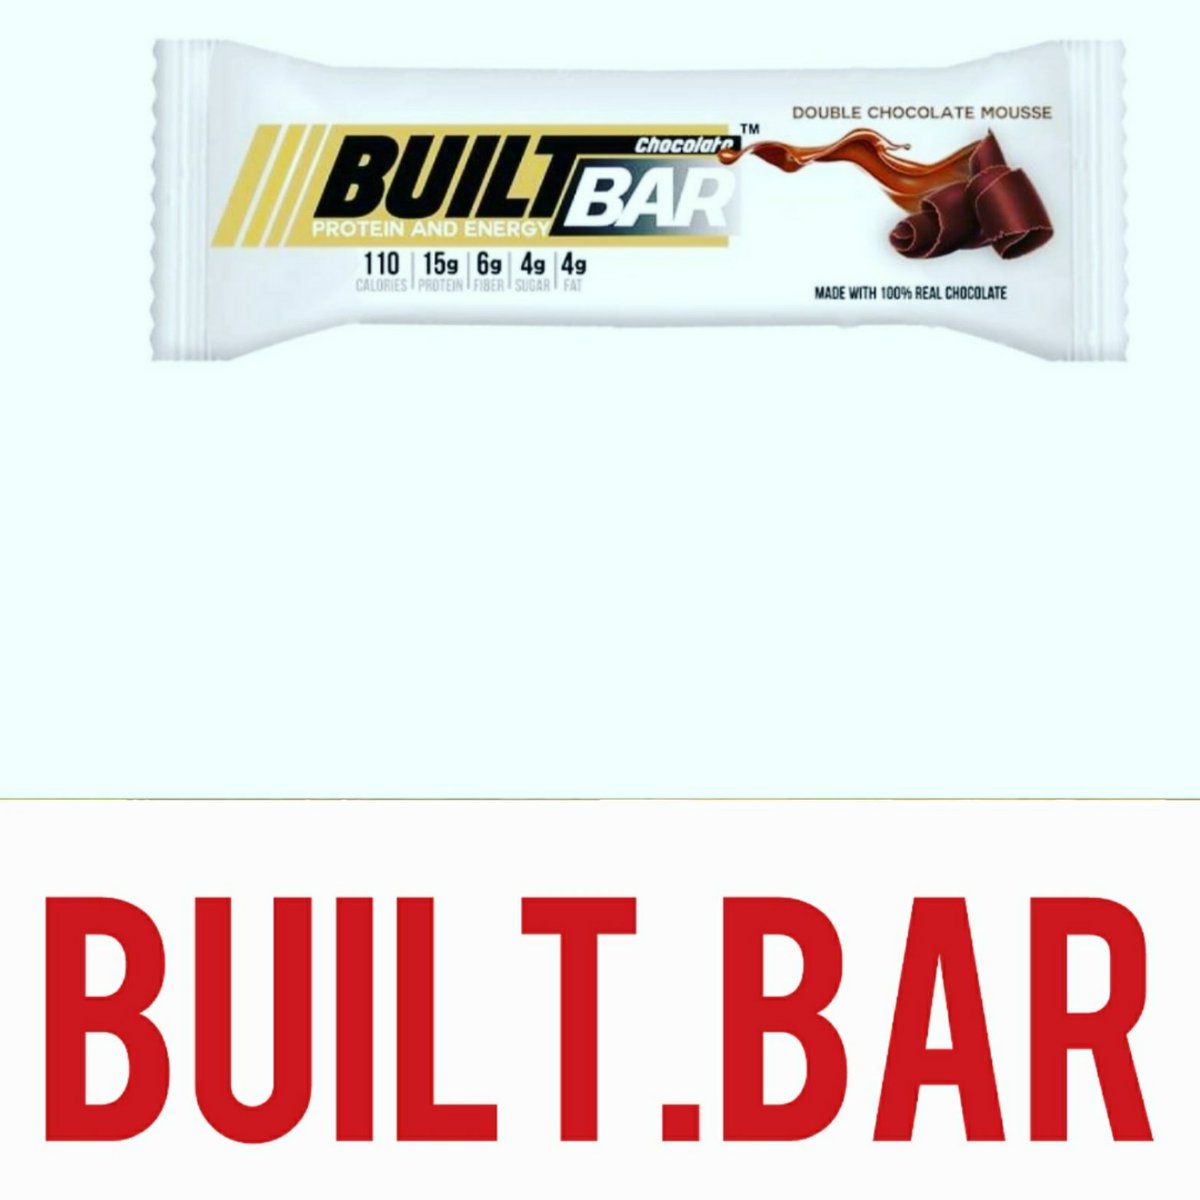 http://built.bar   Best protein in the world. #builtbar #proteinbar #bars #protein #healthy #fit #fitness #weightloss #diet #keto #ketodiet #chocolate #ketogenic #glutenfree #energydrink #proteinbars #body #gym #nutrition #bike  #cycling #cool  #fatloss #proteinspic.twitter.com/RsO4LIEzCh